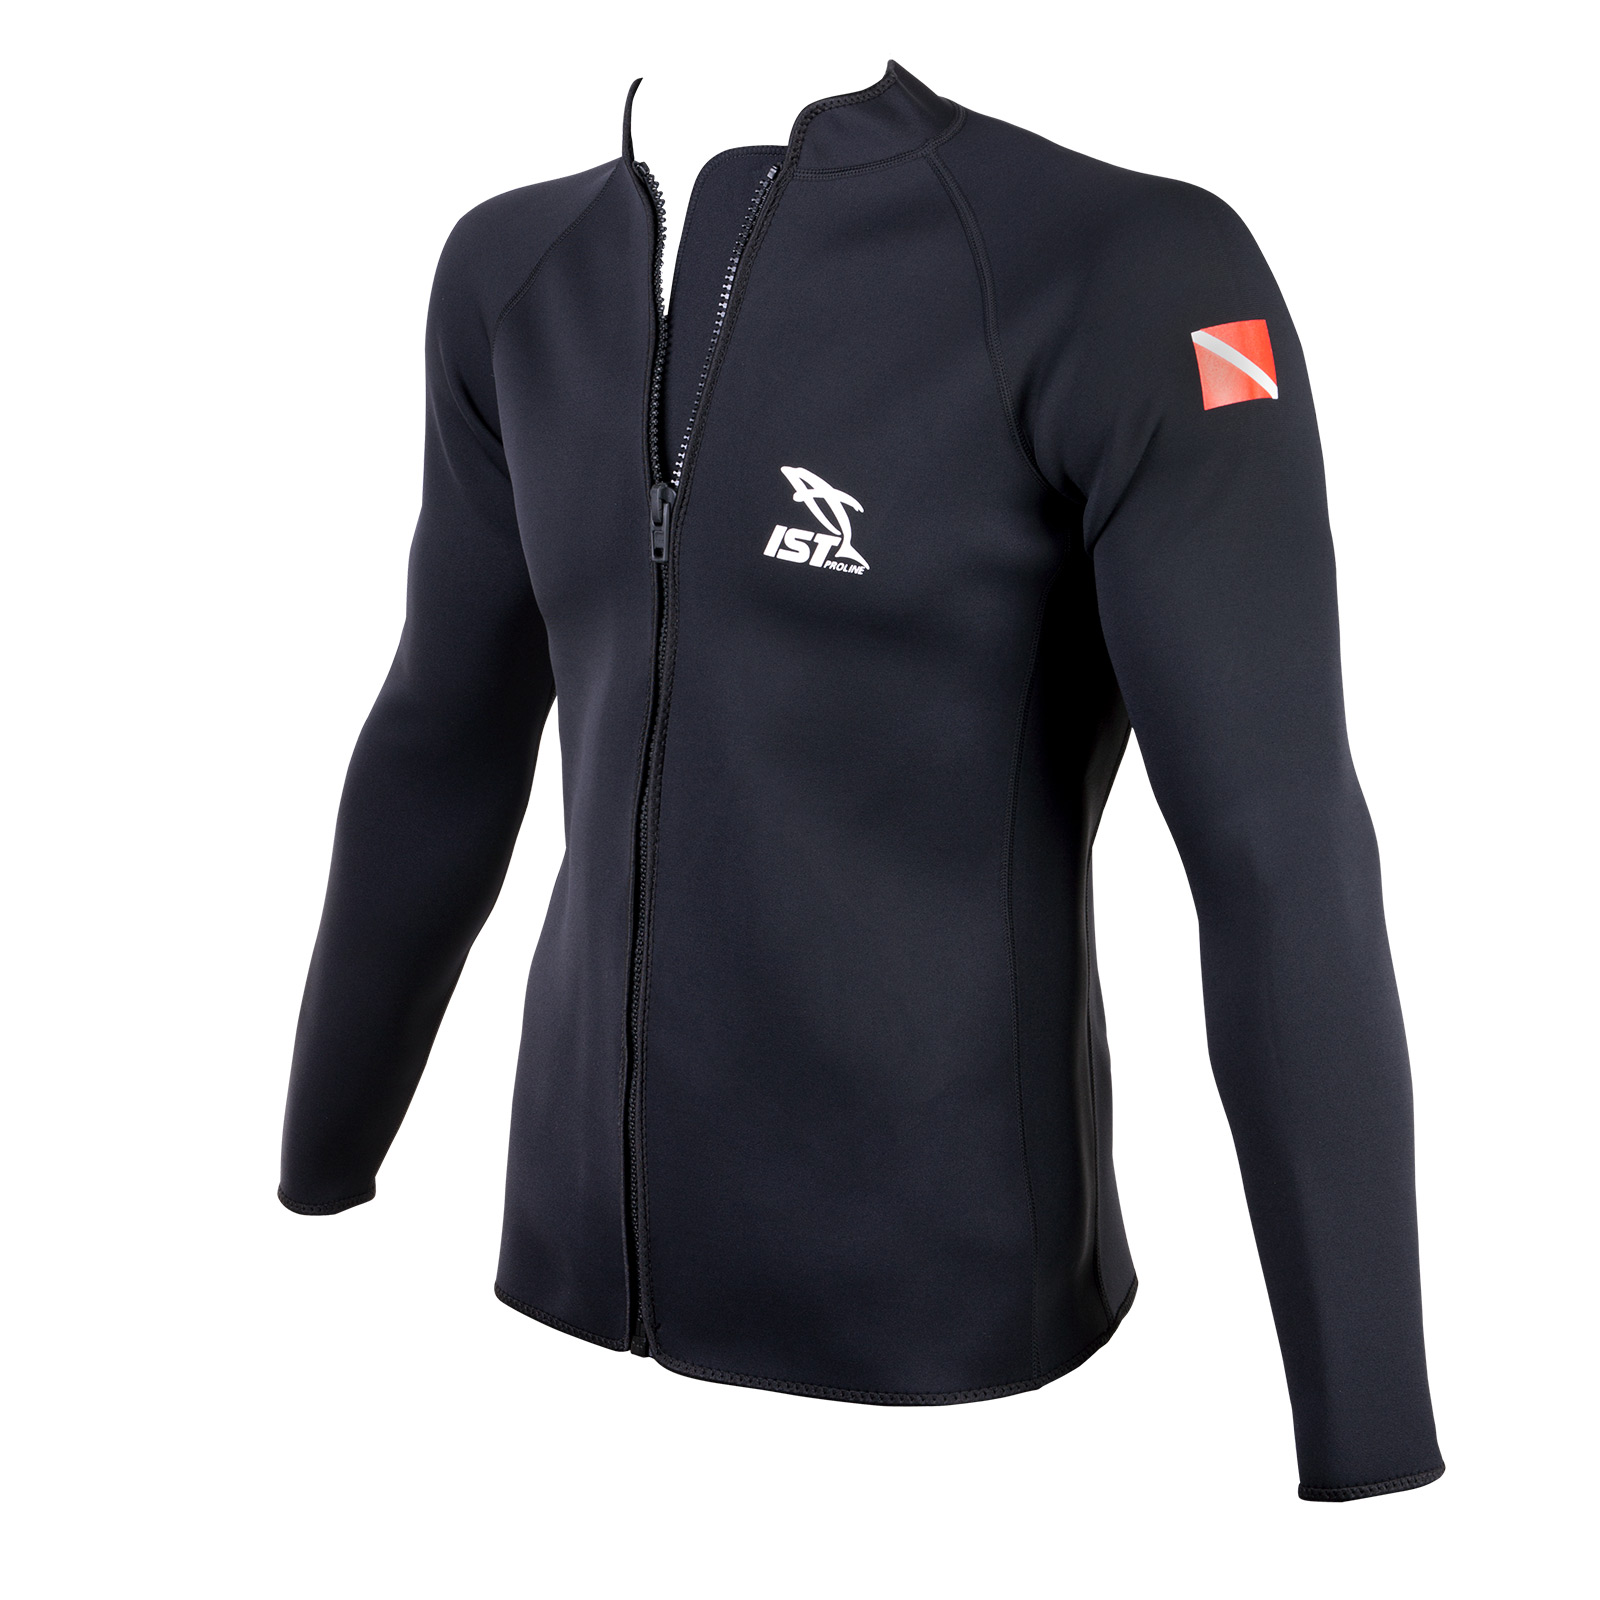 PURiGUARD 2.5mm Long Sleeved Neoprene Jacket